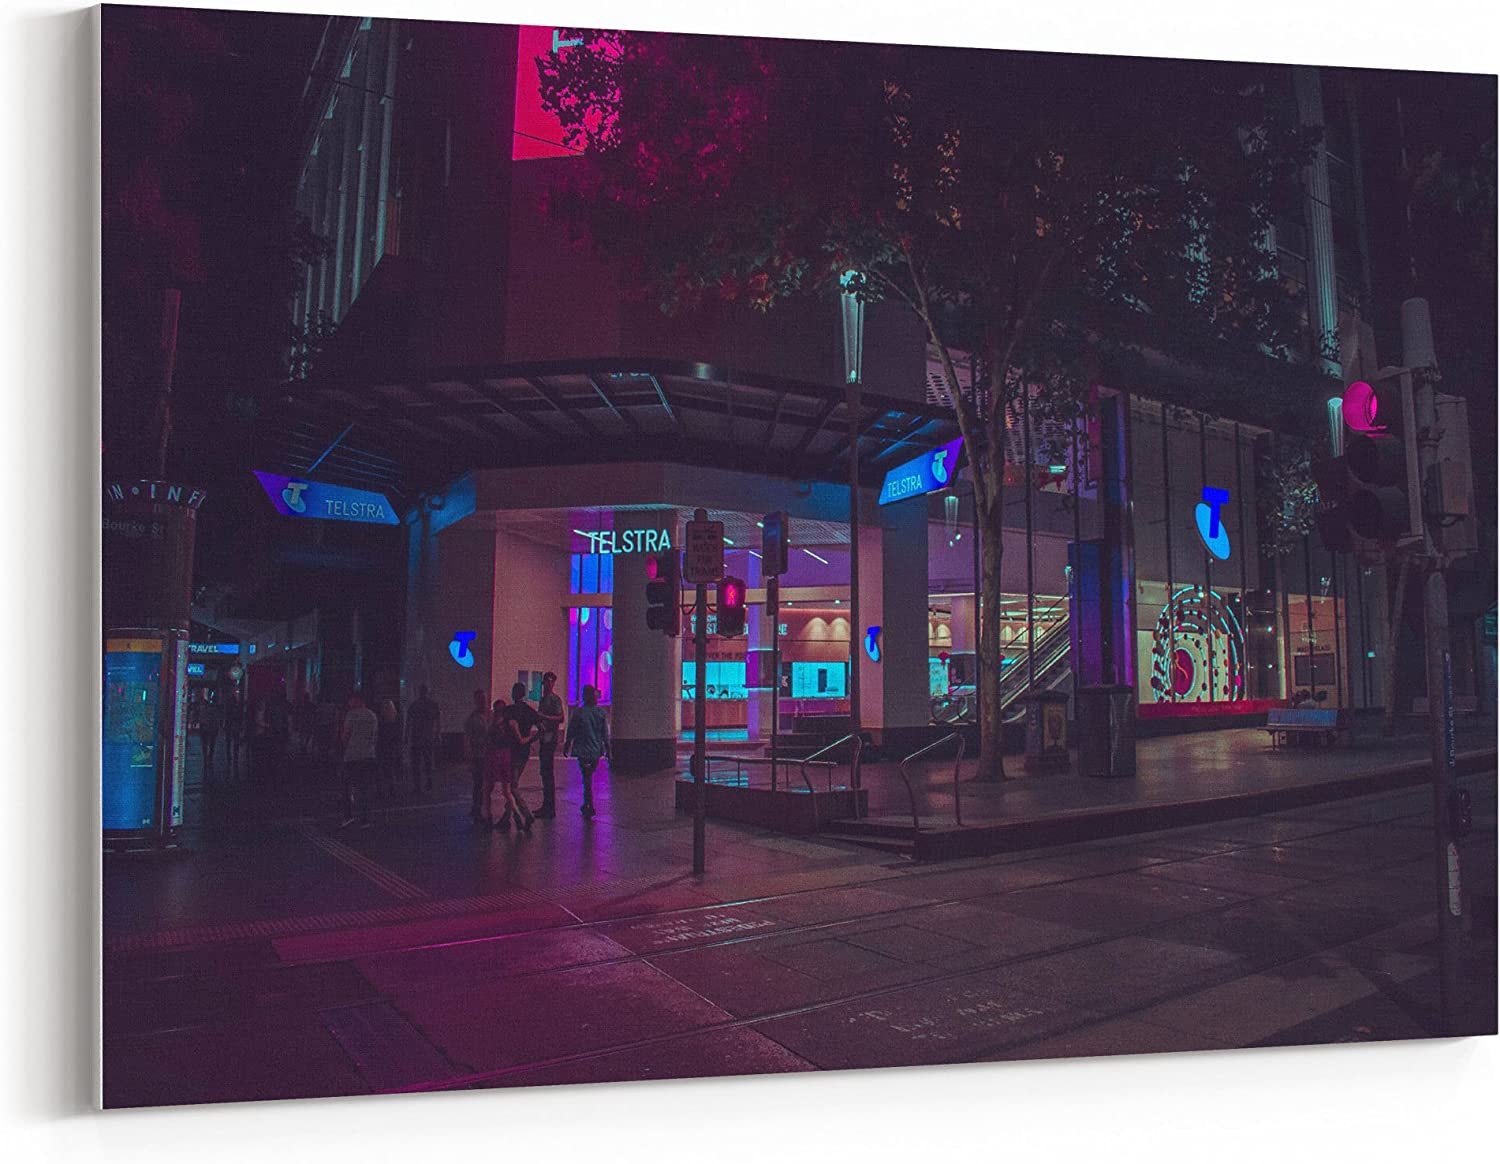 Westlake Art Cyberpunk City 12x18 Canvas Print Wall Art Canvas Stretched Gallery Wrap Modern Picture Photography Artwork Ready To Hang 12x18 Inch 5b0c 409ff Posters Prints